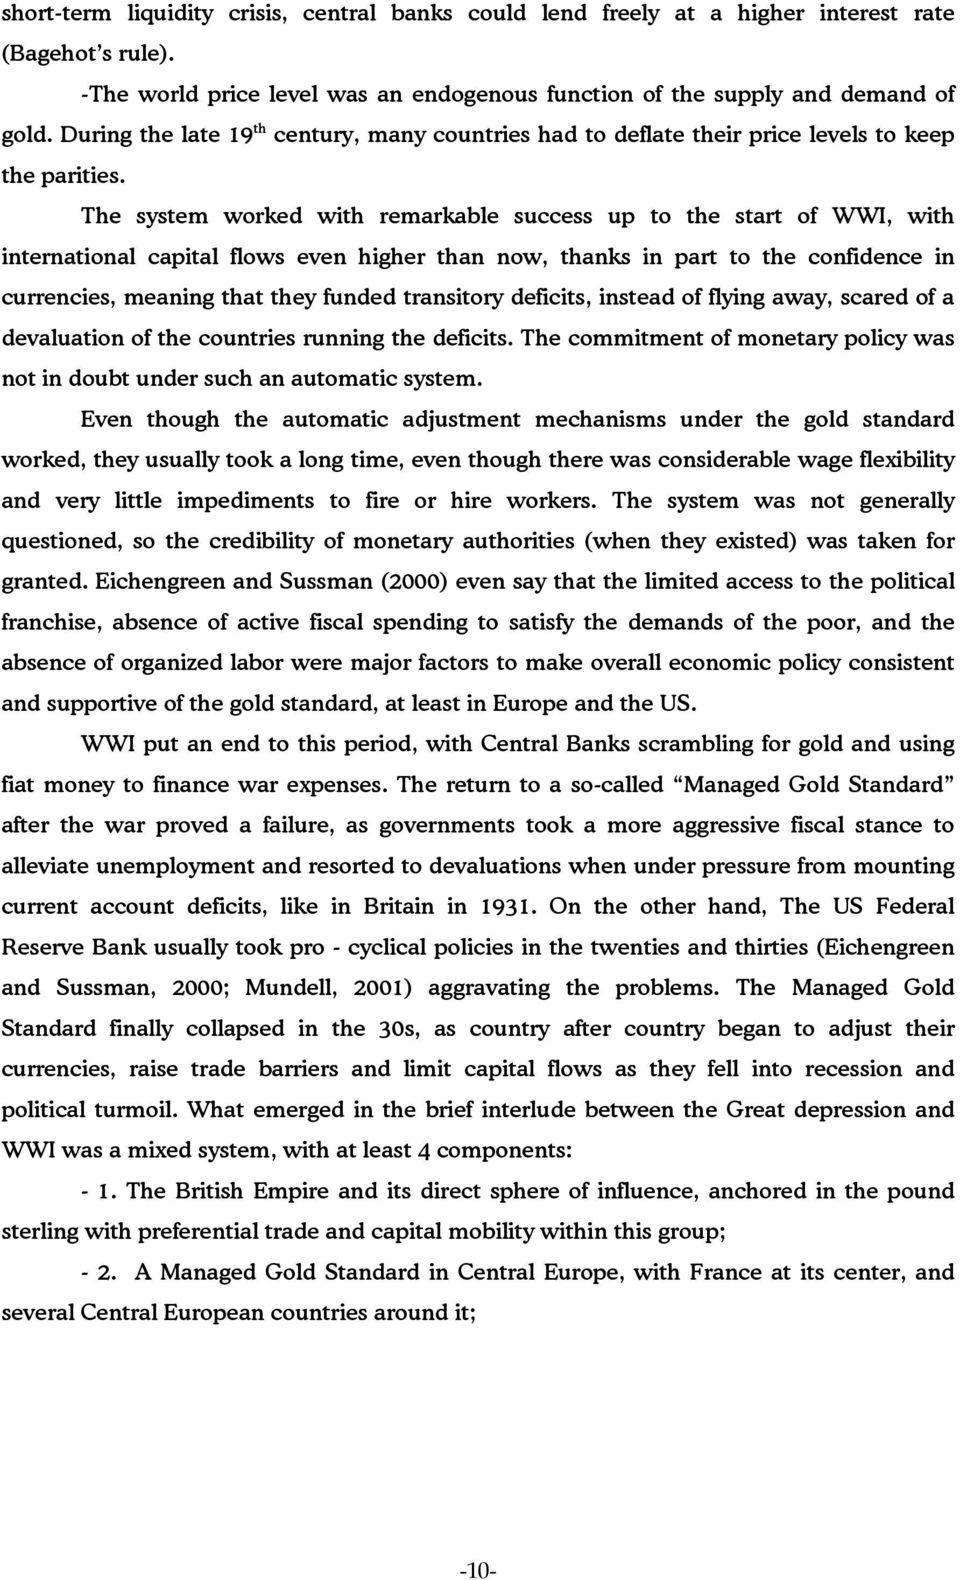 The system worked with remarkable success up to the start of WWI, with international capital flows even higher than now, thanks in part to the confidence in currencies, meaning that they funded